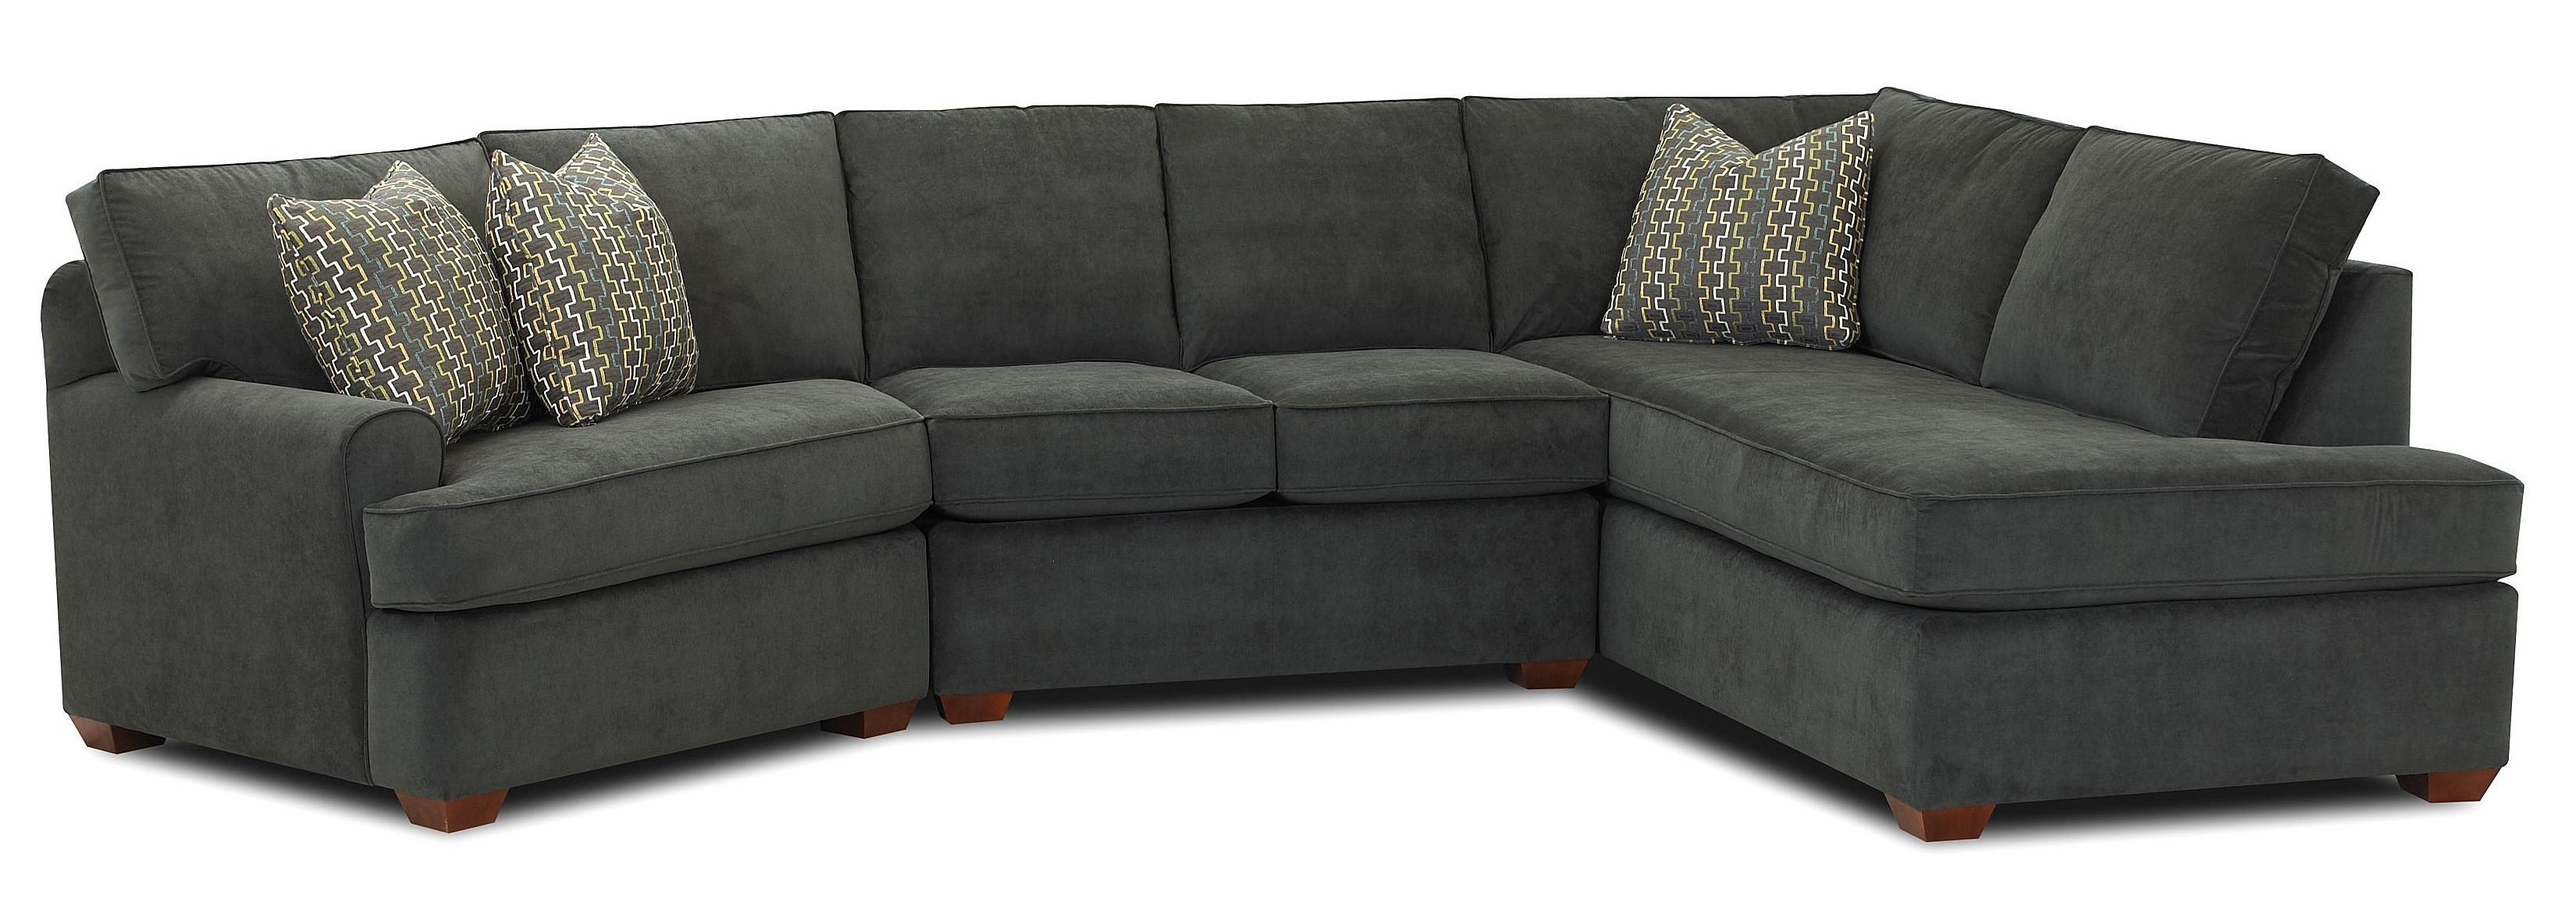 Preferred Sectional Sofa With Left Facing Sofa Chaiseklaussner (View 15 of 15)